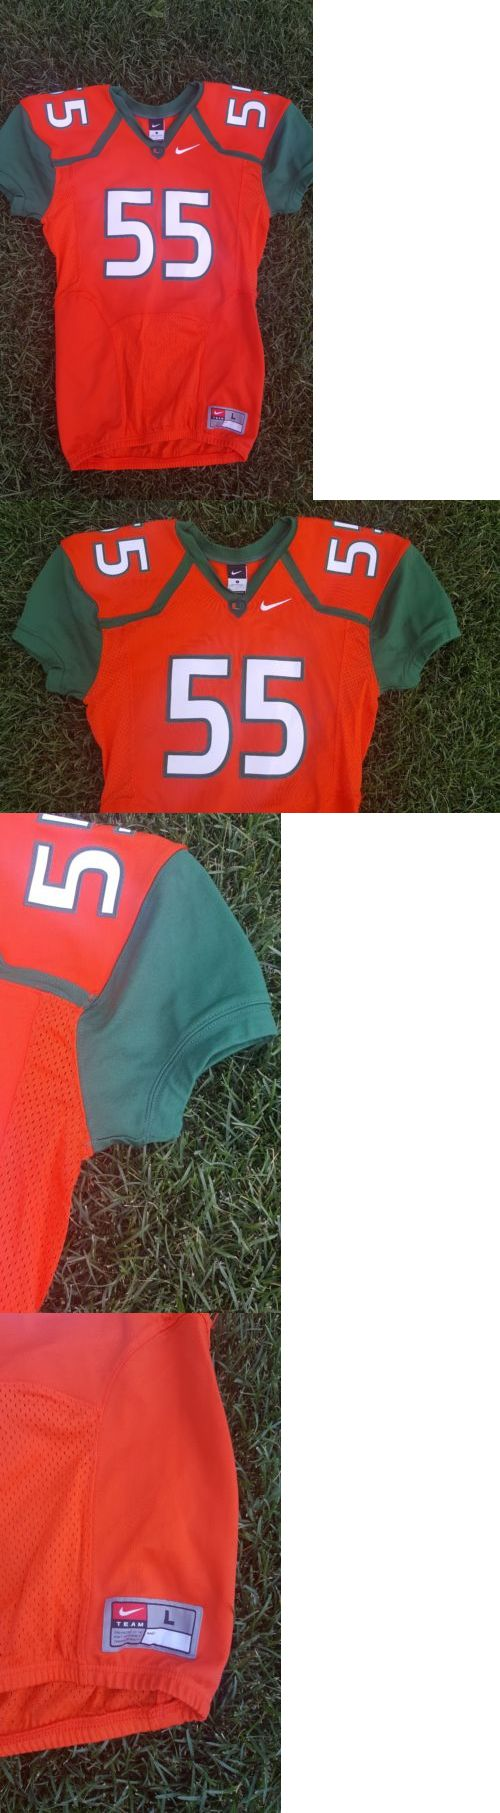 College-NCAA 24541: Nwt! Mens Nike Miami Hurricanes Pro Cut Embroidered College Football Jersey L -> BUY IT NOW ONLY: $44.95 on eBay!